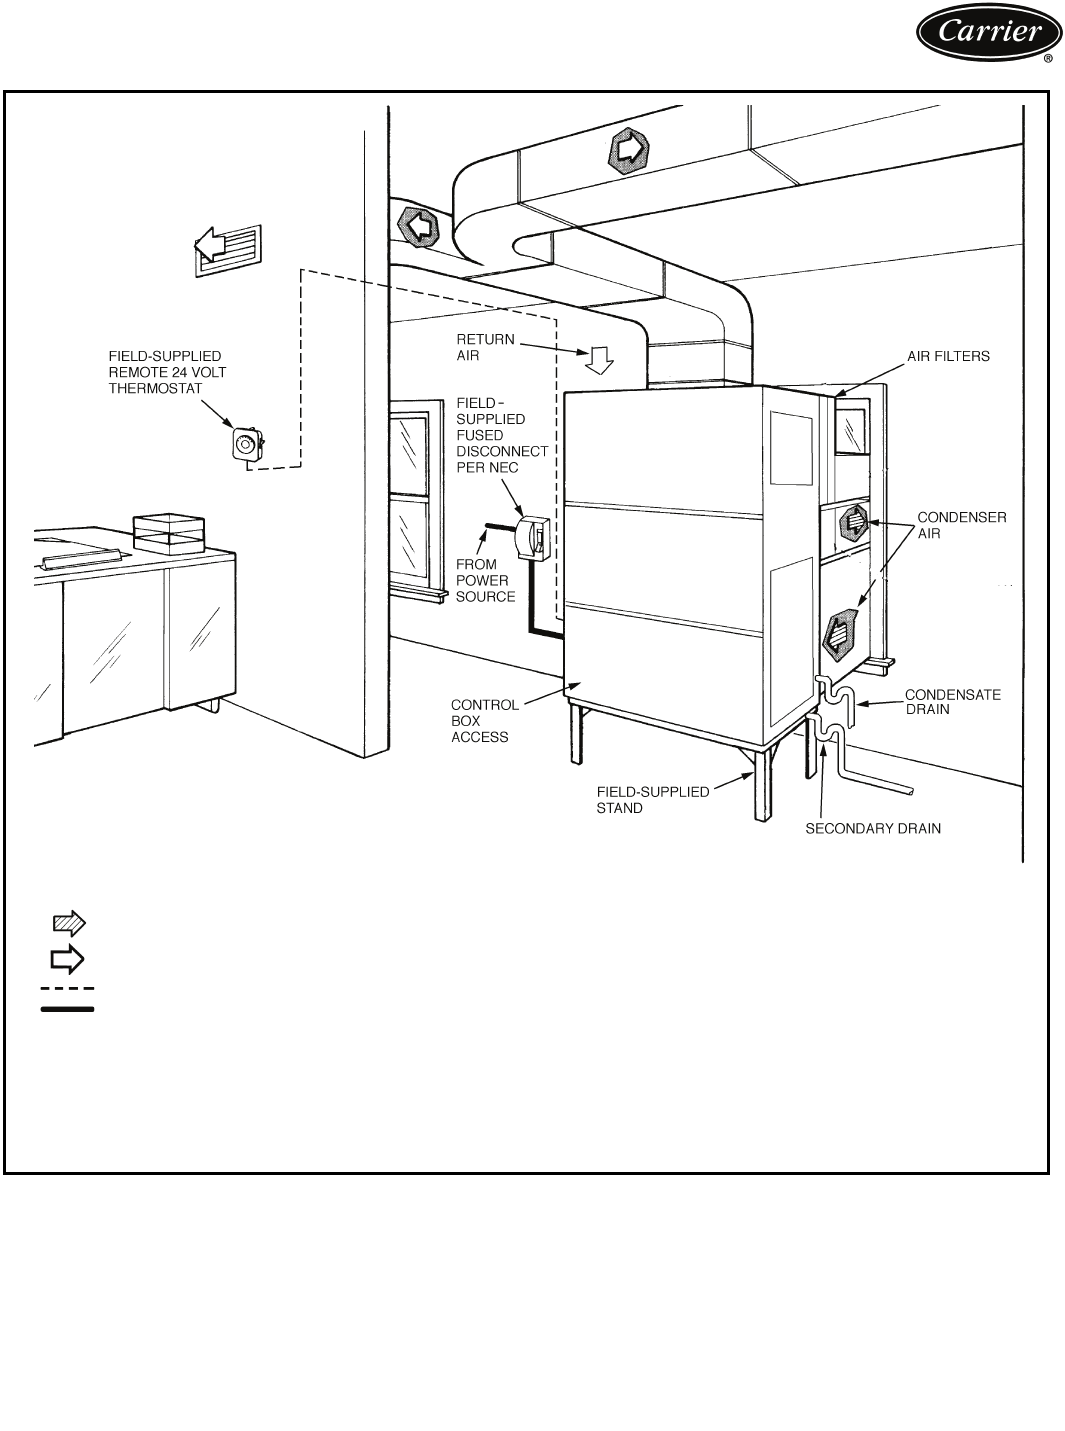 Carrier 50XCA06-24 Typical piping and wiring